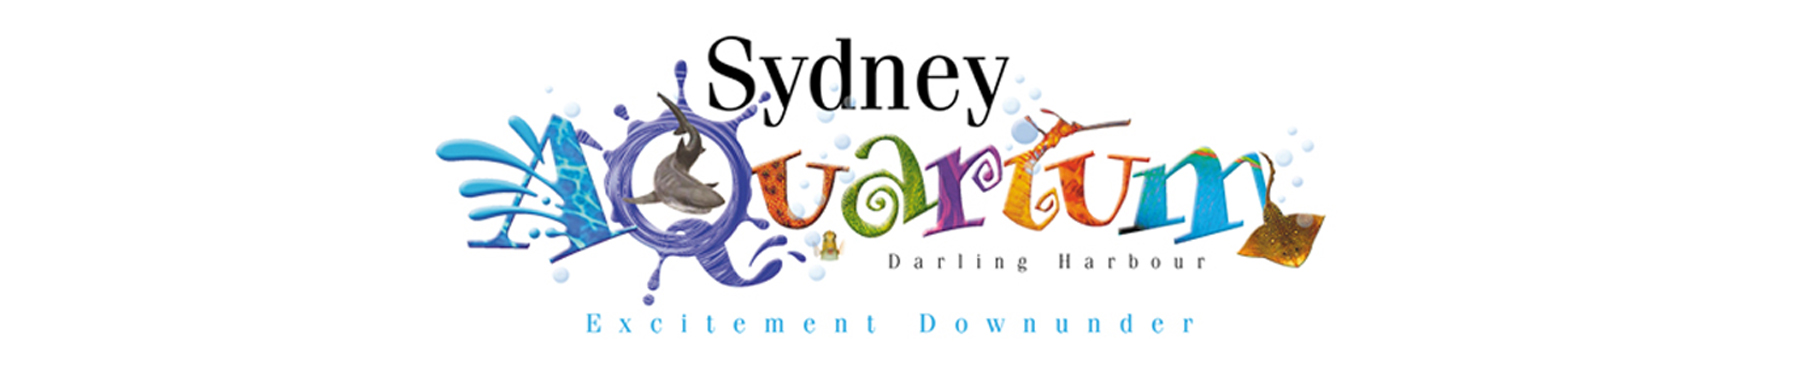 Sydney Aquarium banner on white background